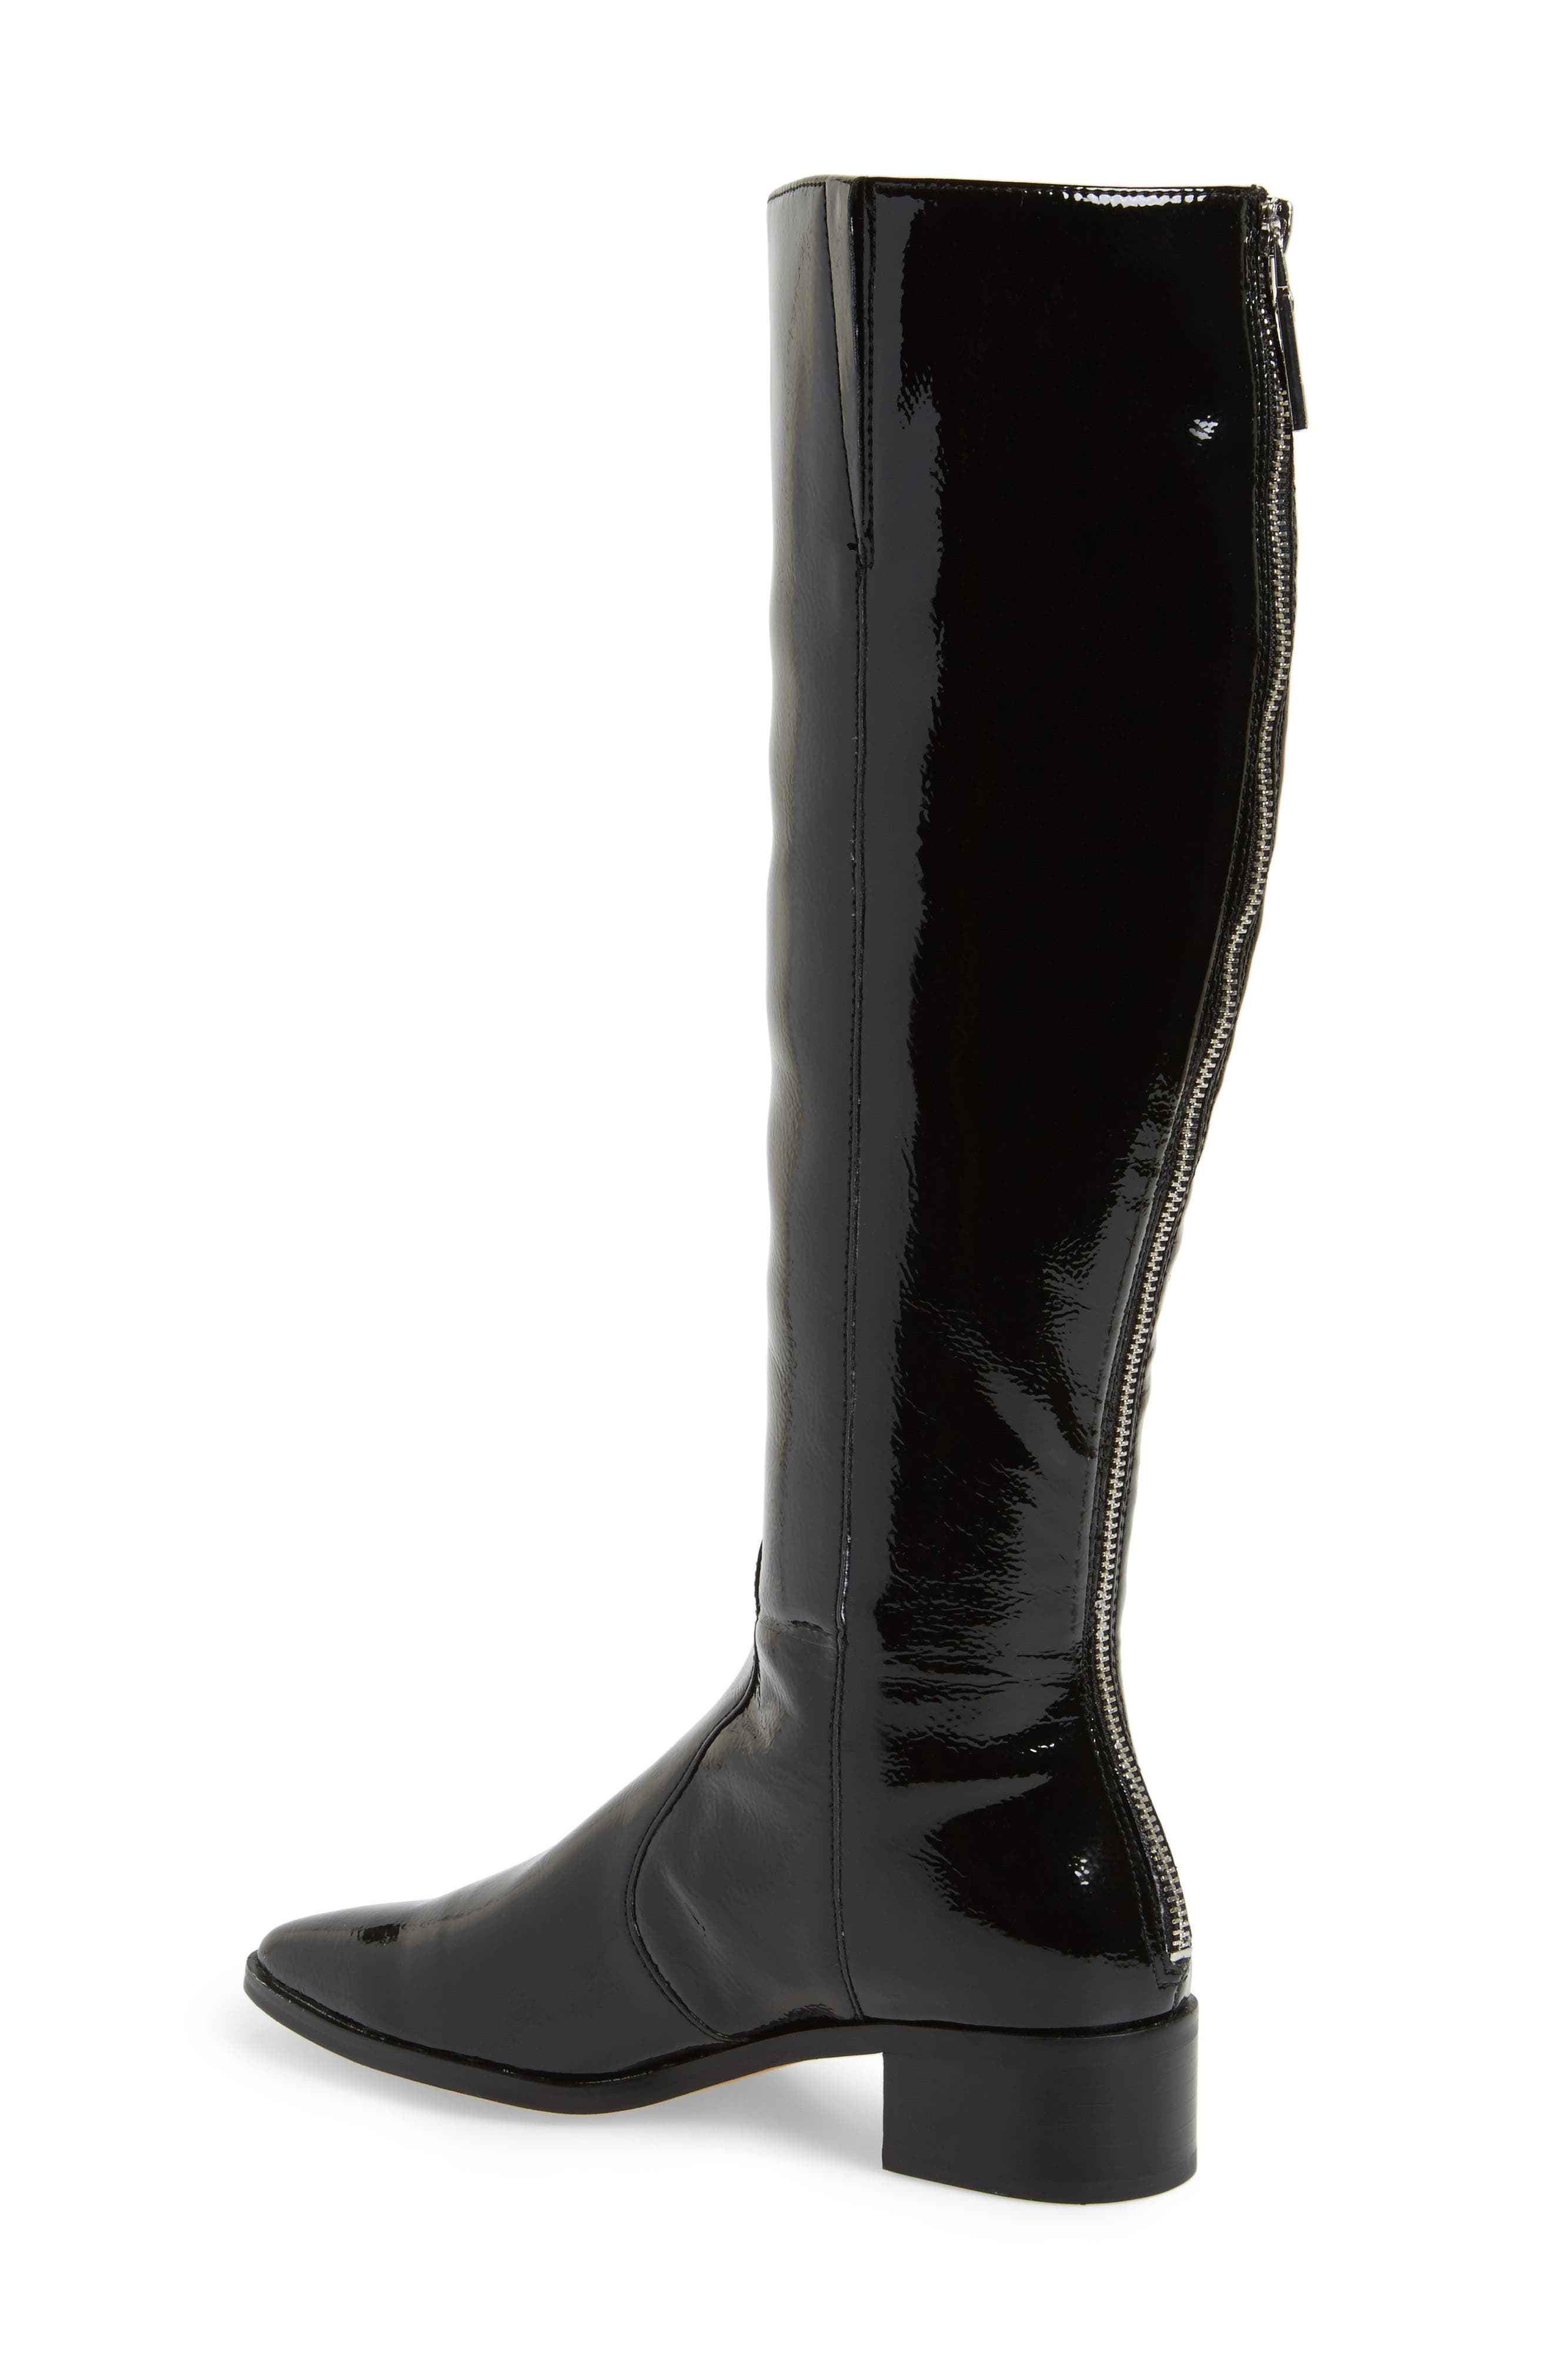 Morey Knee High Riding Boot,                             Alternate thumbnail 2, color,                             Onyx Patent